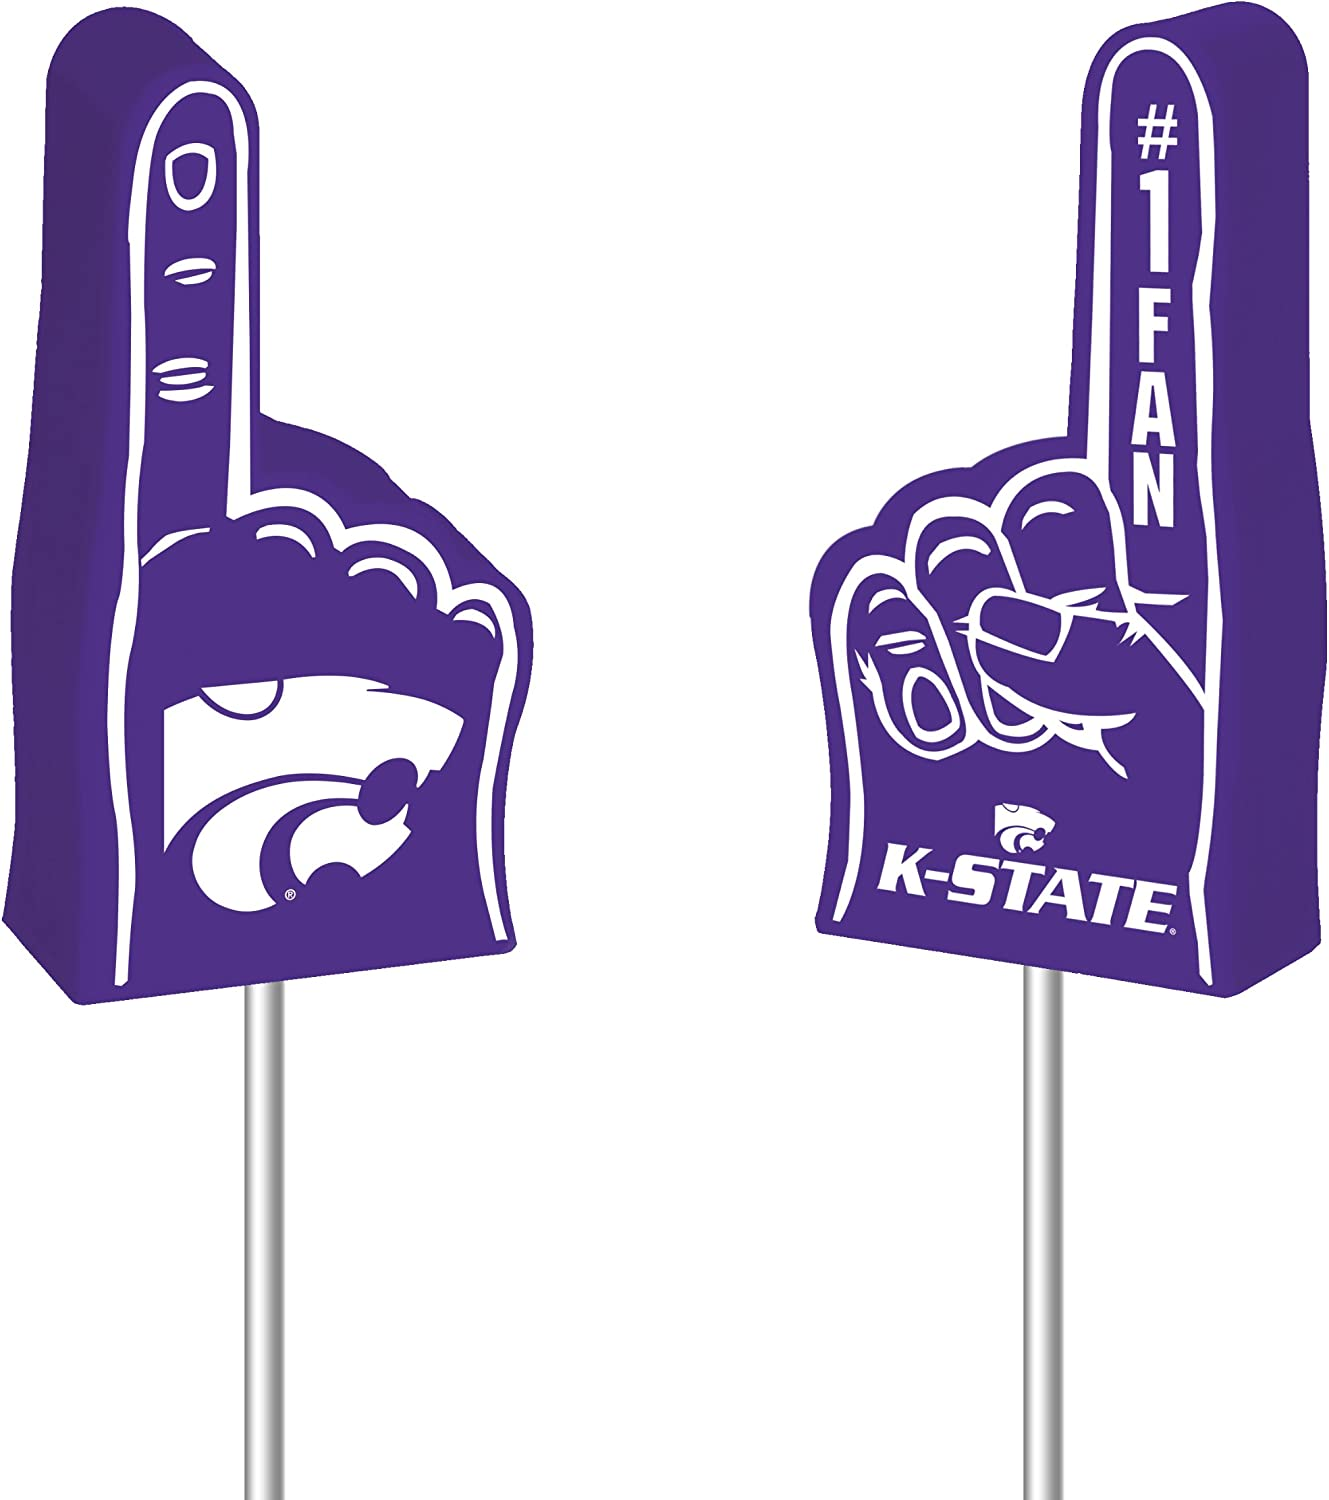 Cash All items in the store special price NCAA Kansas State Wildcats Topper Antenna Foam Finger